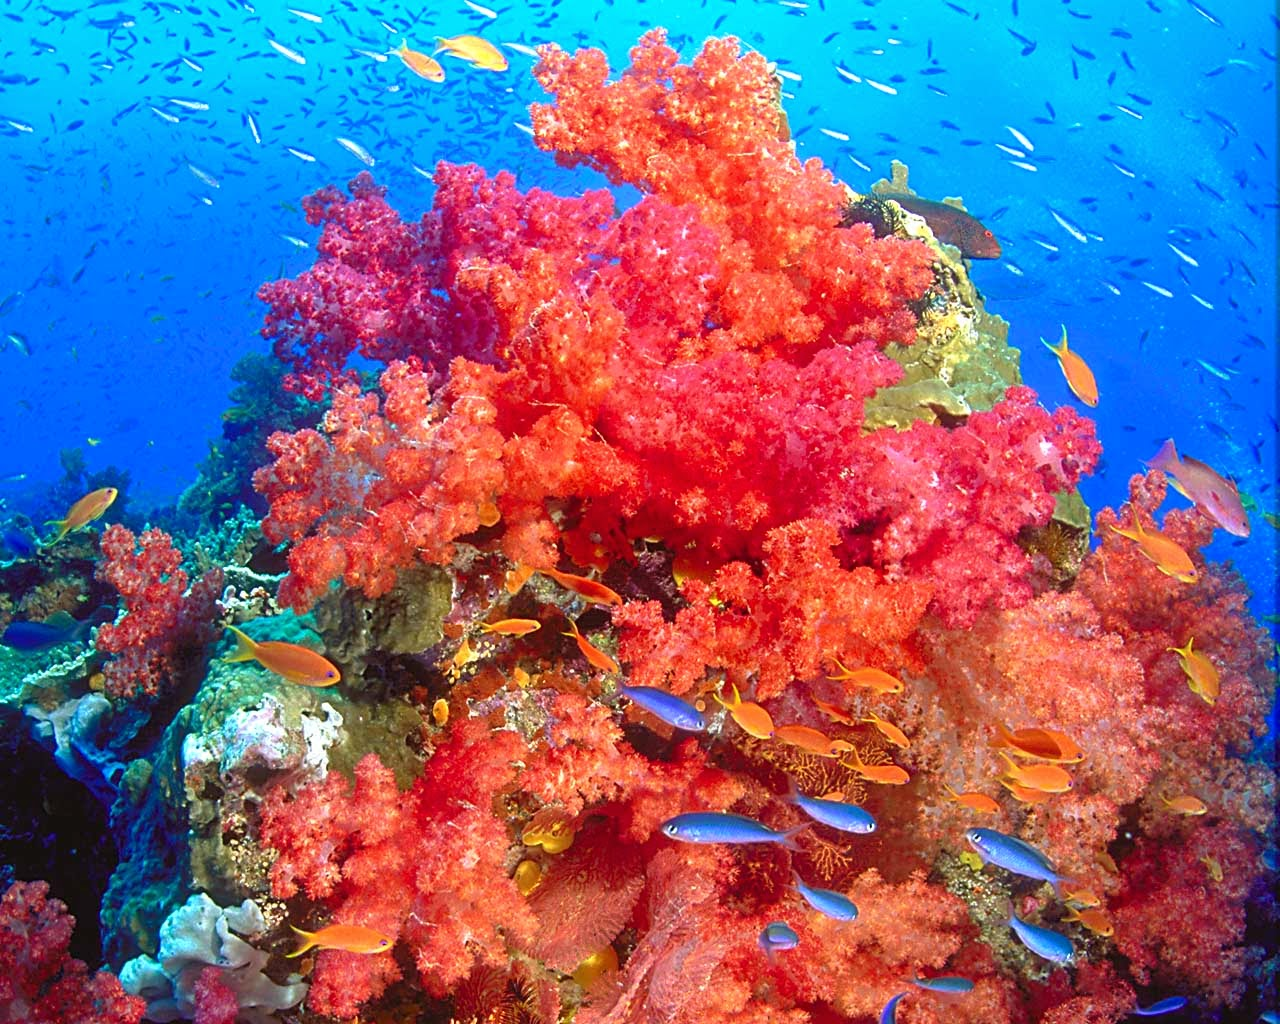 Coral reef hd wallpapers earth blog - Sea coral wallpaper ...